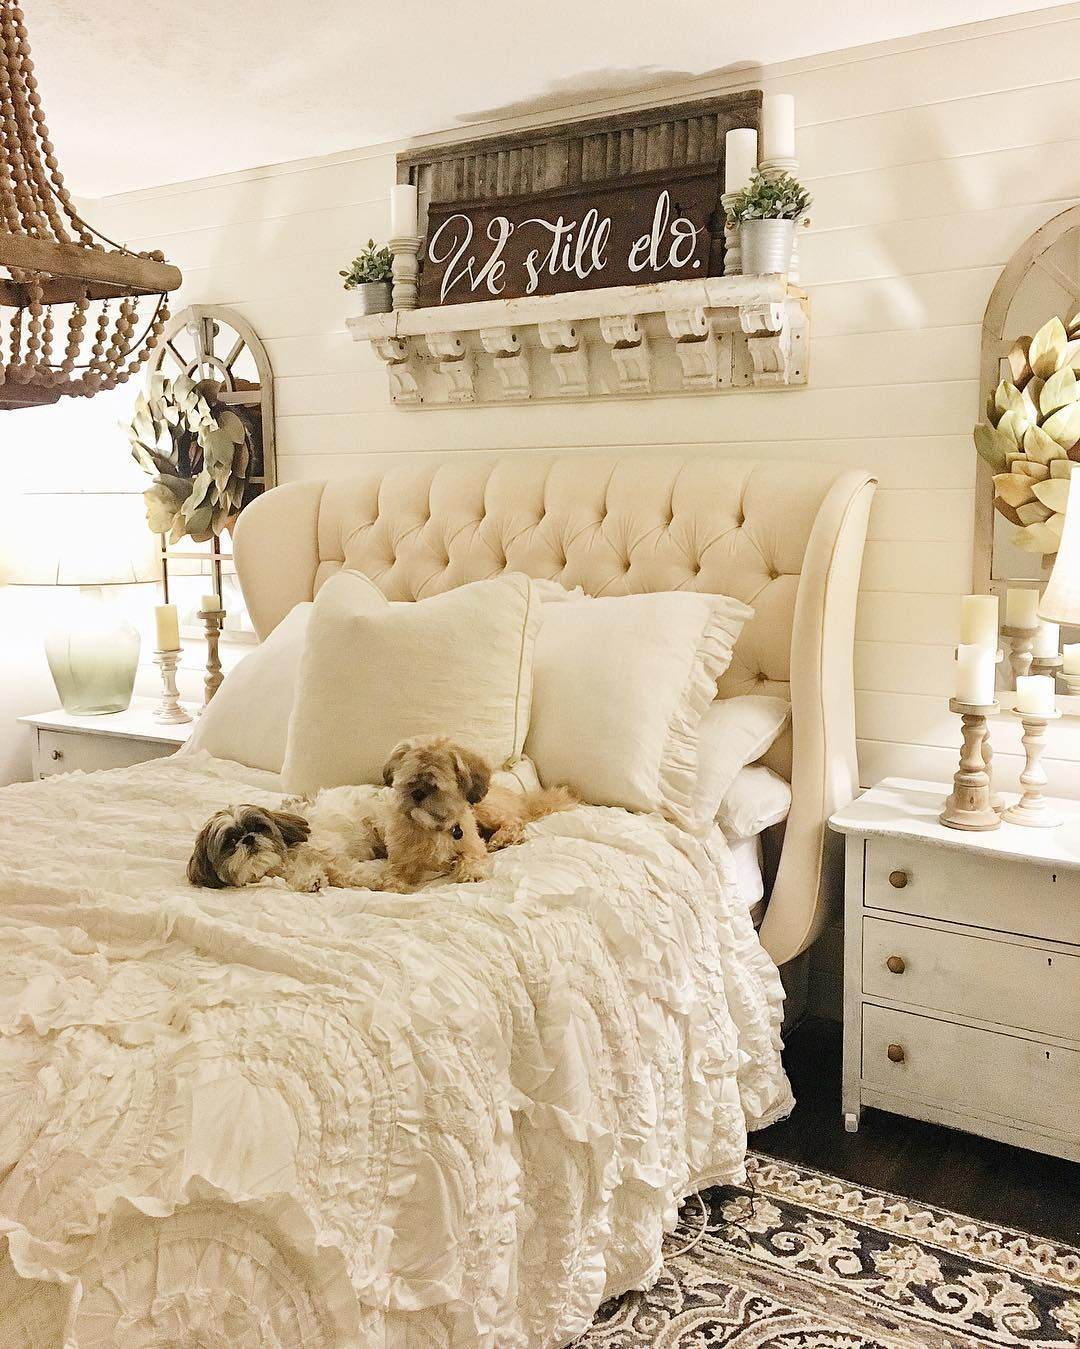 Shabby Chic Bedrooms: Liz Marie Blog On Instagram